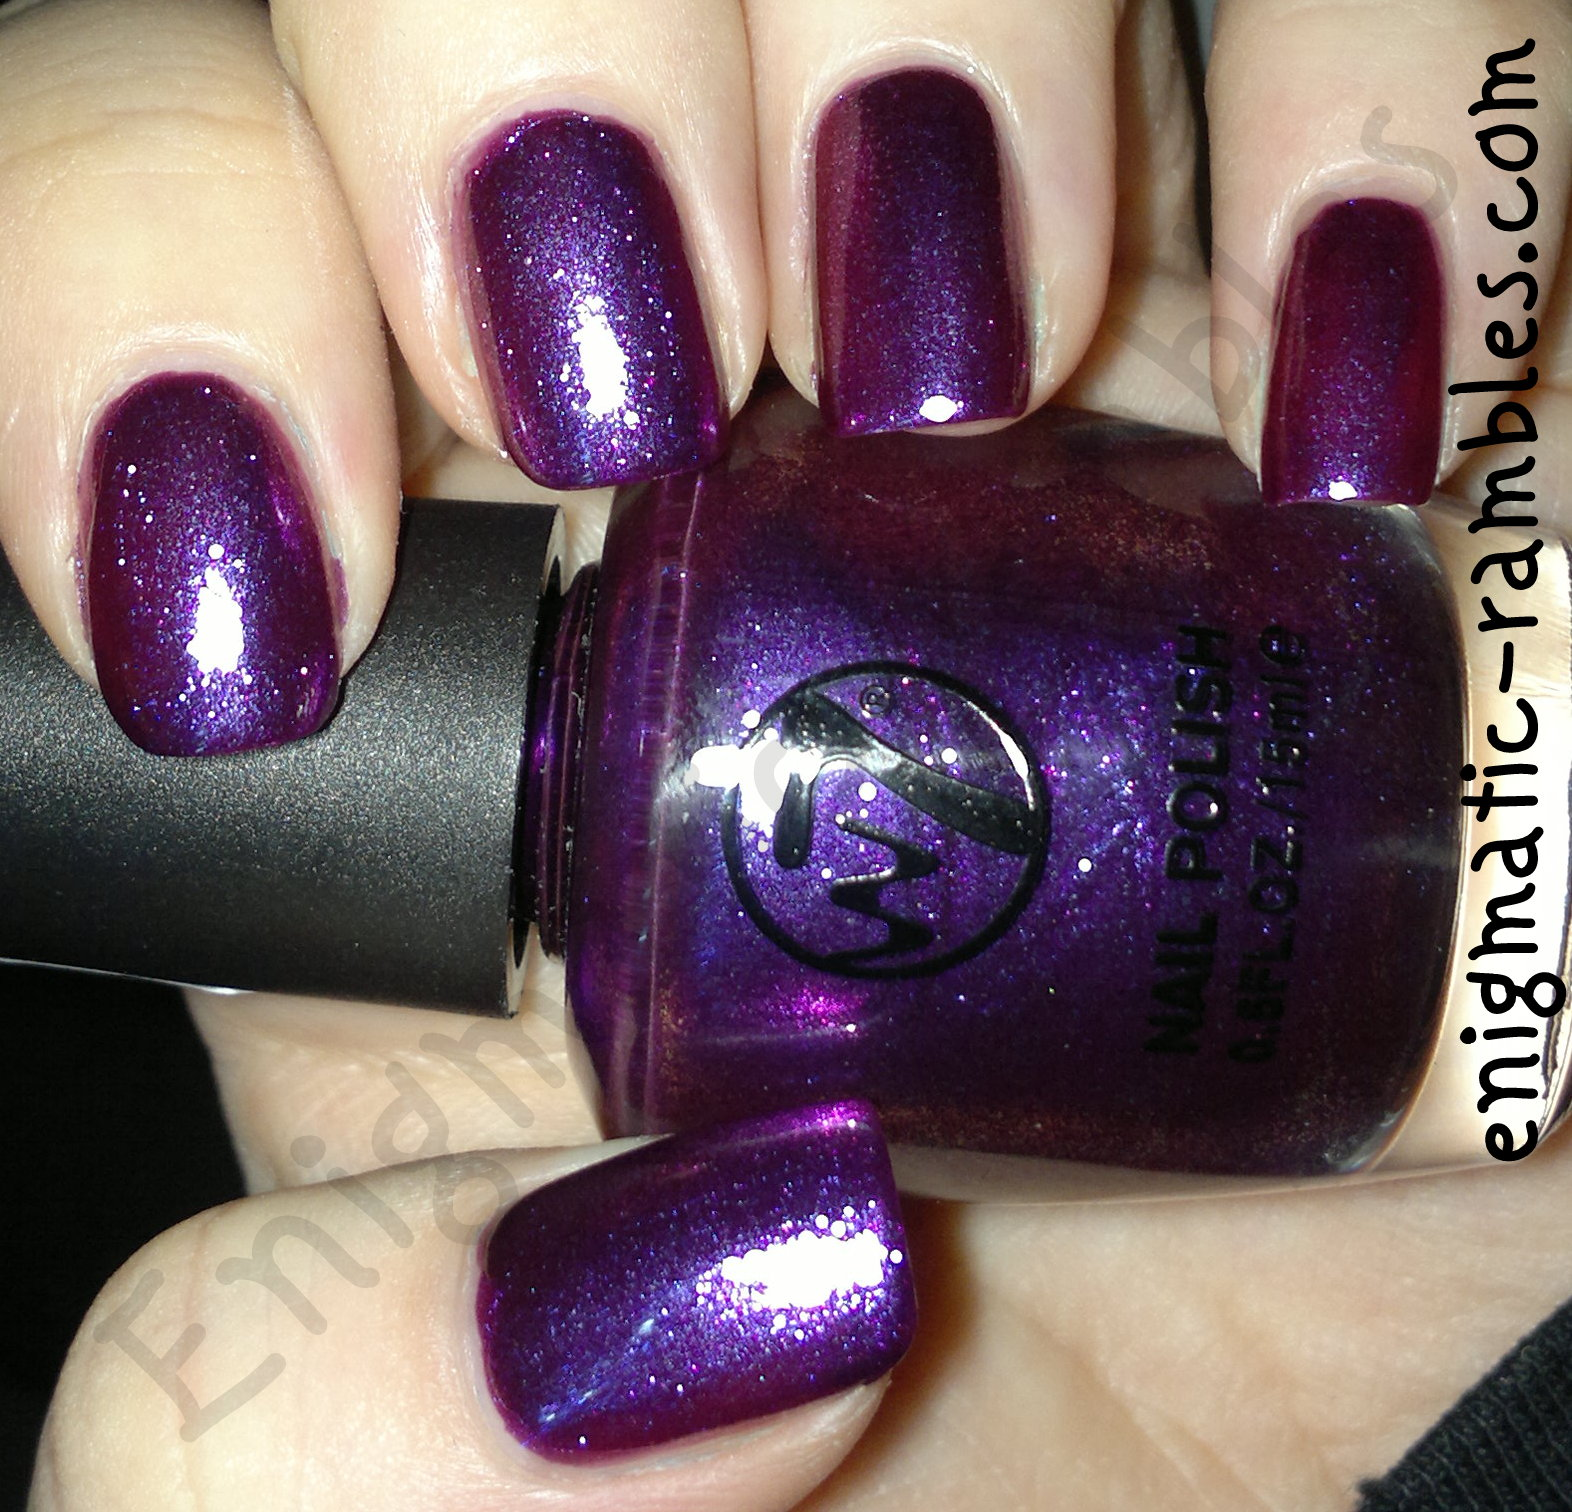 swatch-w7-purple-rain